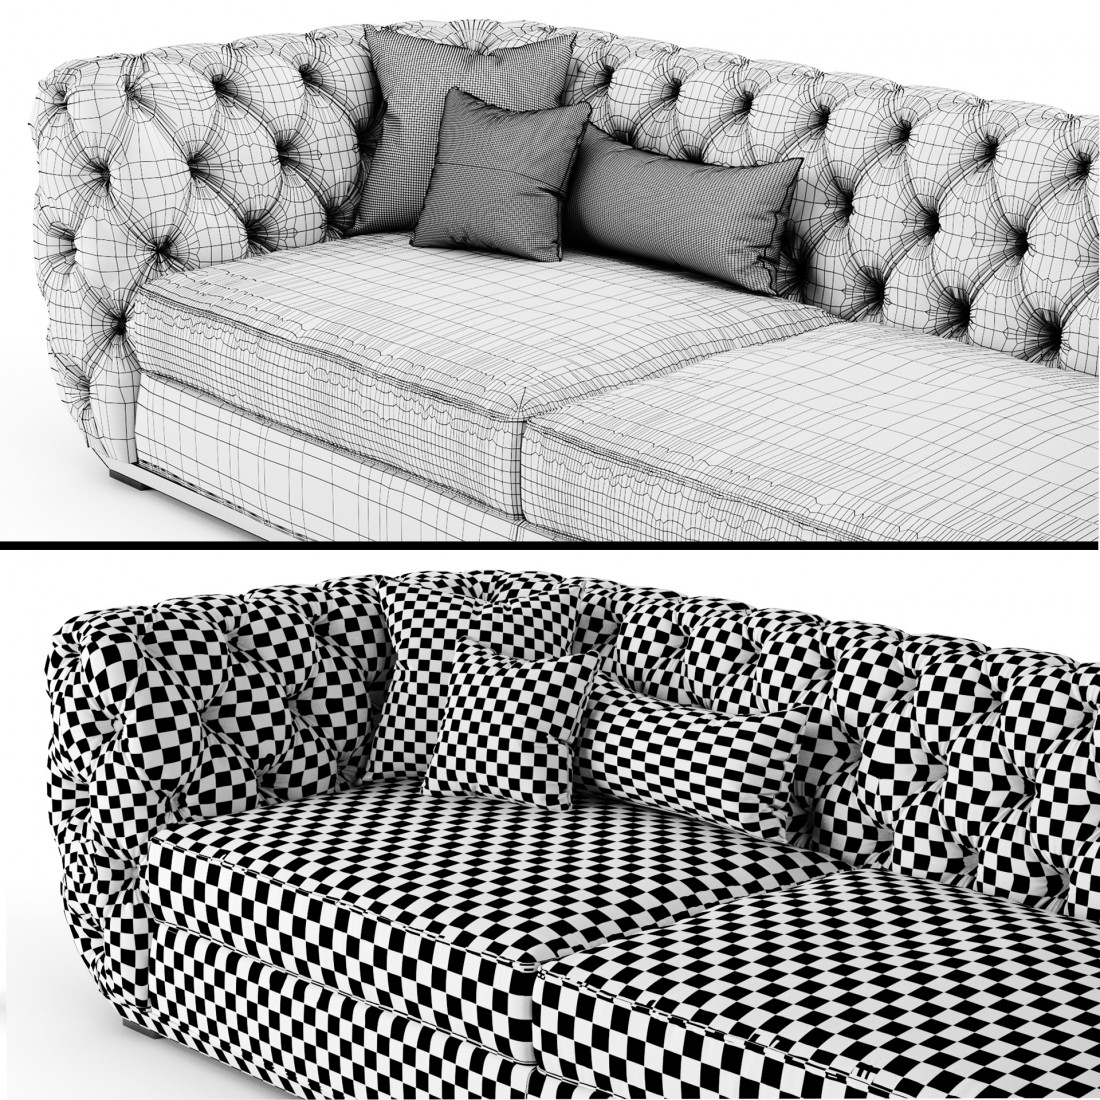 Sofa King Chesterfild Quot The Sofa And Chair Company Quot 3d